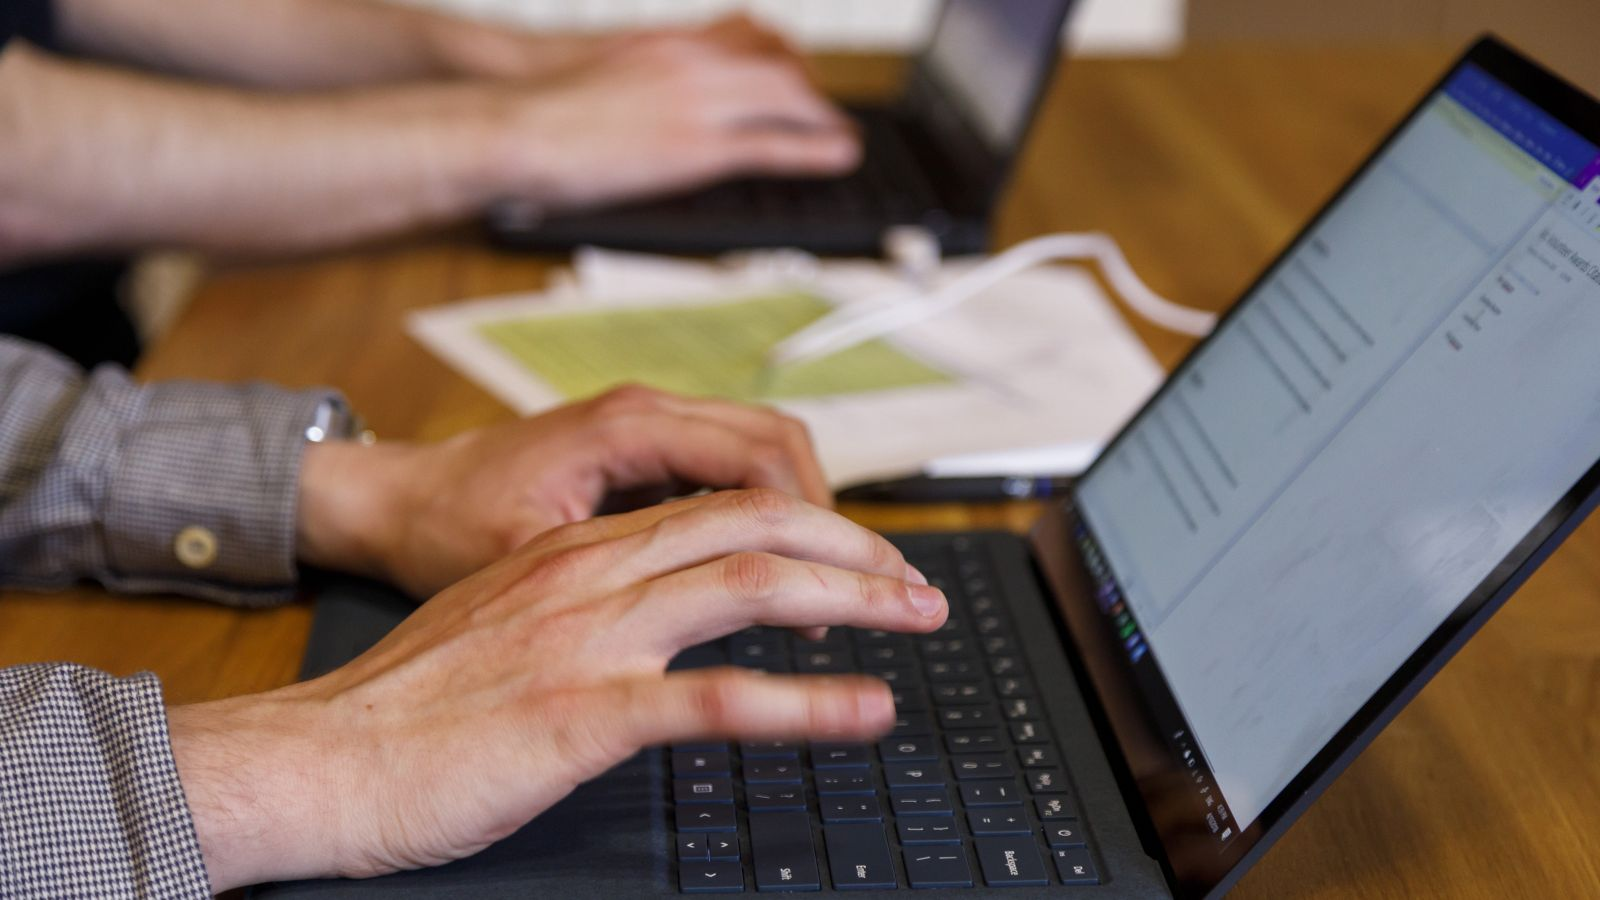 Two people's hands are typing on individual laptops